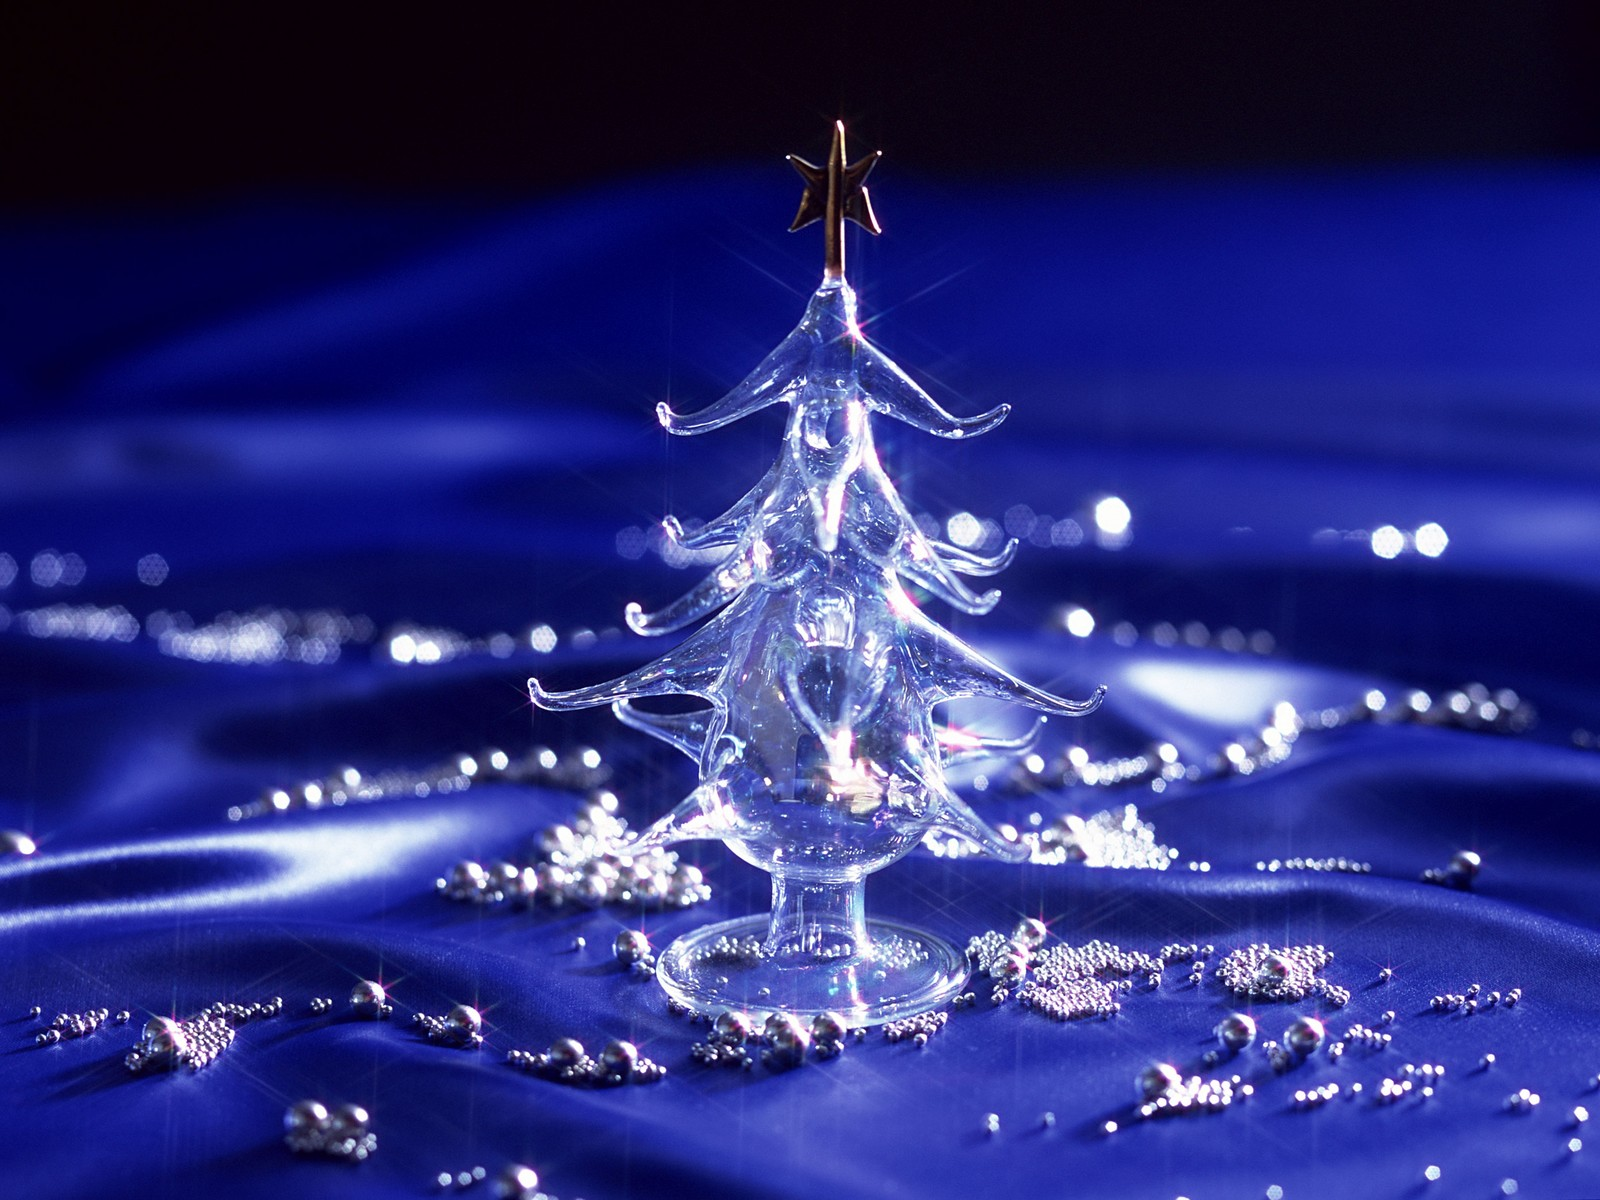 free christmas desktop wallpaper backgrounds   wwwwallpapers in hd 1600x1200